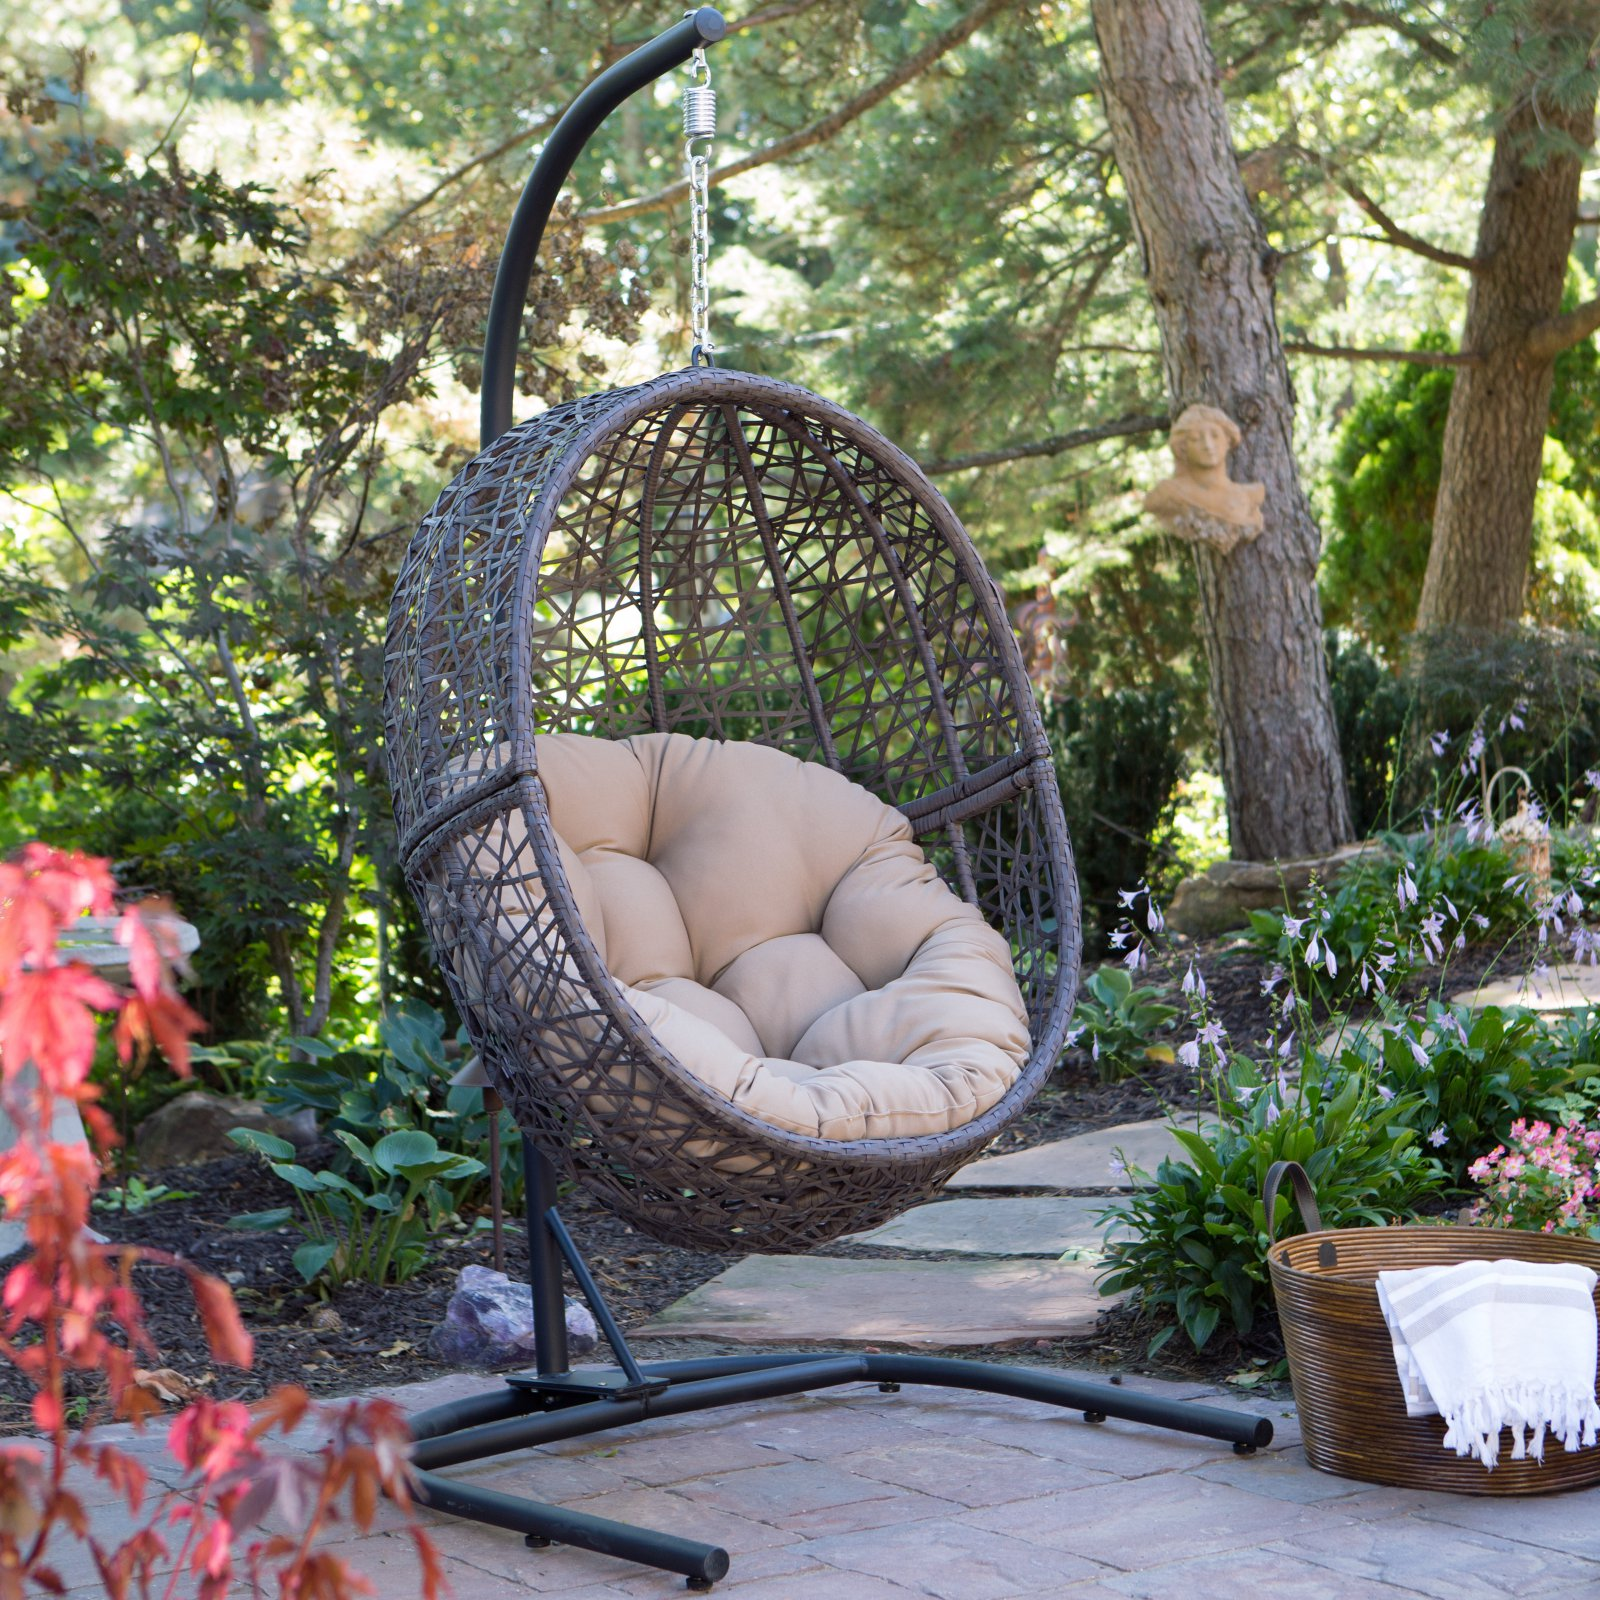 Charmant Island Bay Resin Wicker Hanging Egg Chair With Cushion And Stand